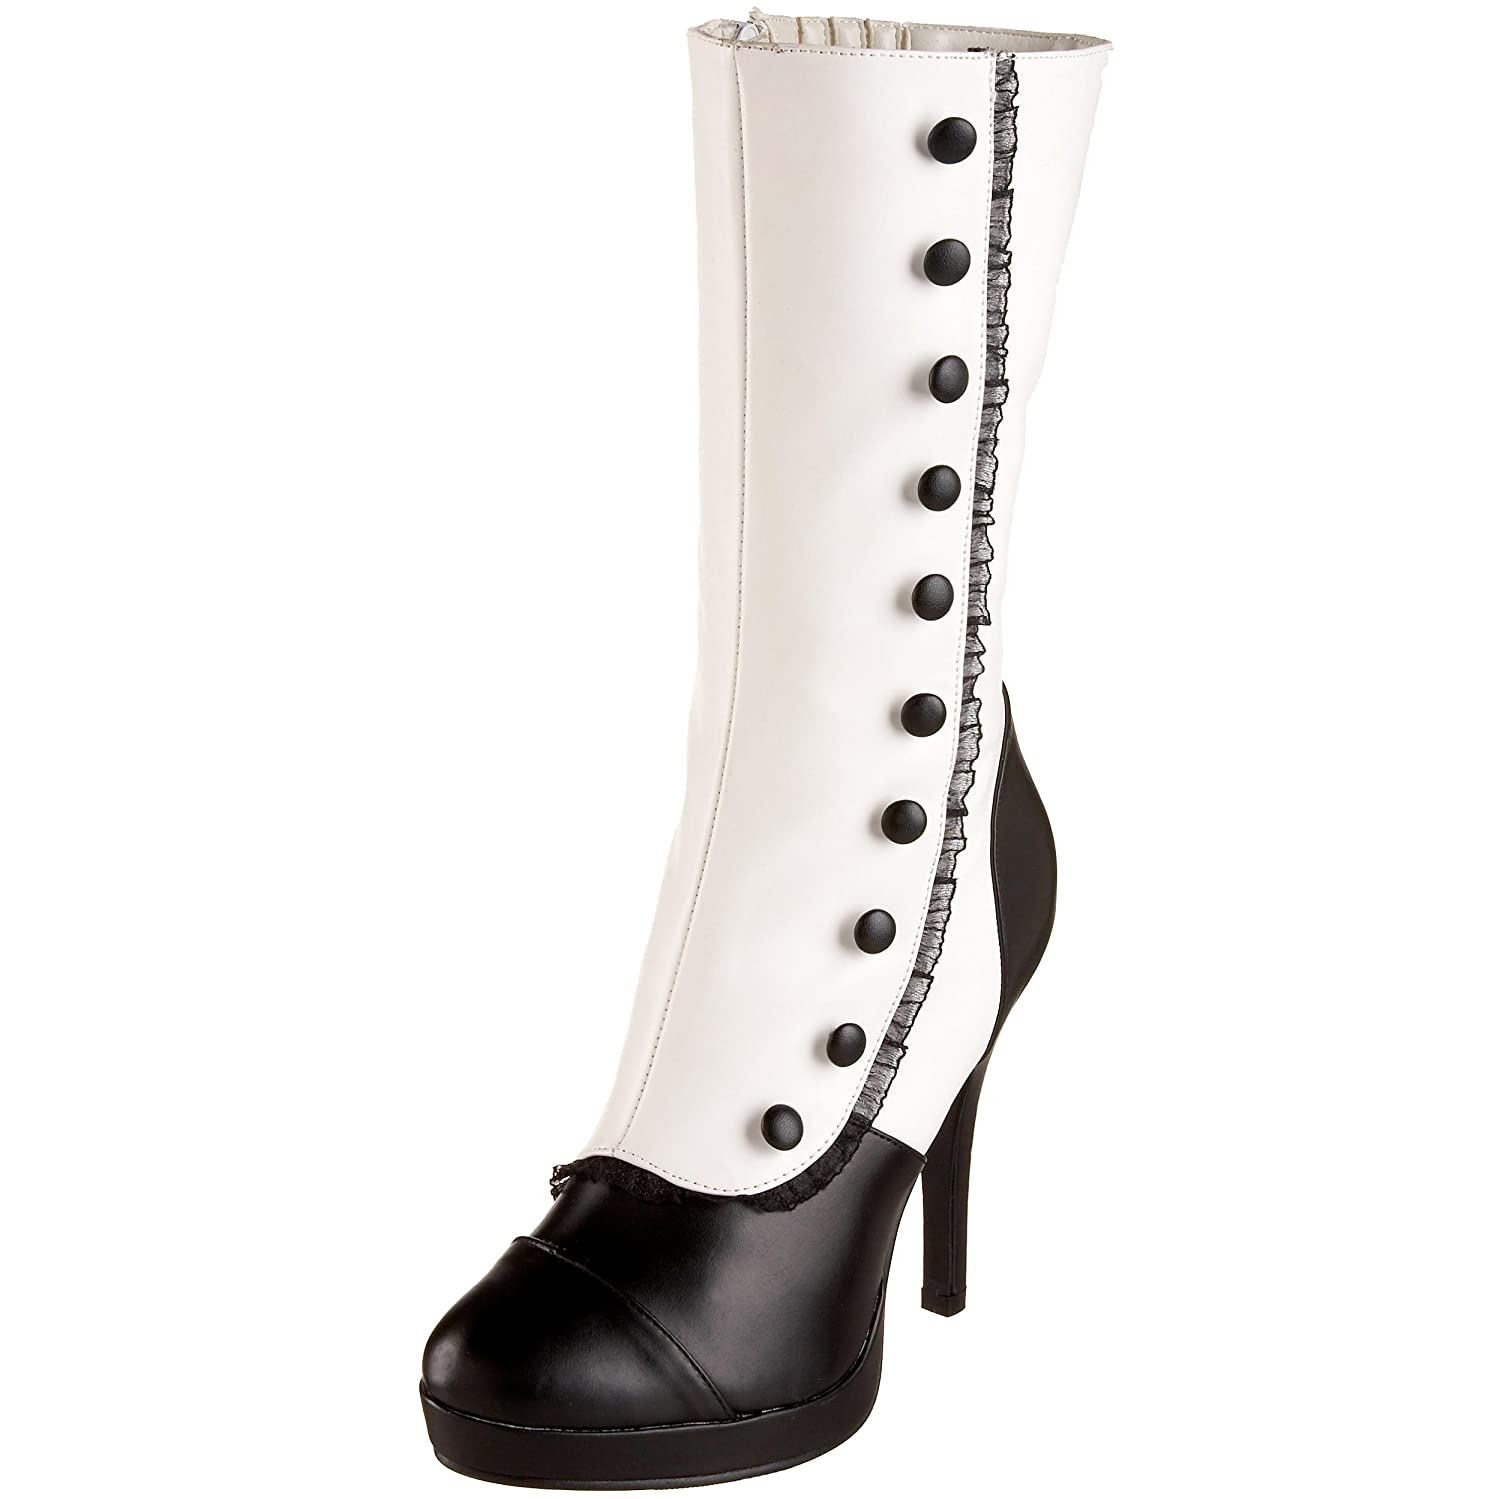 Vintage Boots- Winter Rain and Snow Boots Womens Splendor-130 Mid-Calf Boot $126.63 AT vintagedancer.com